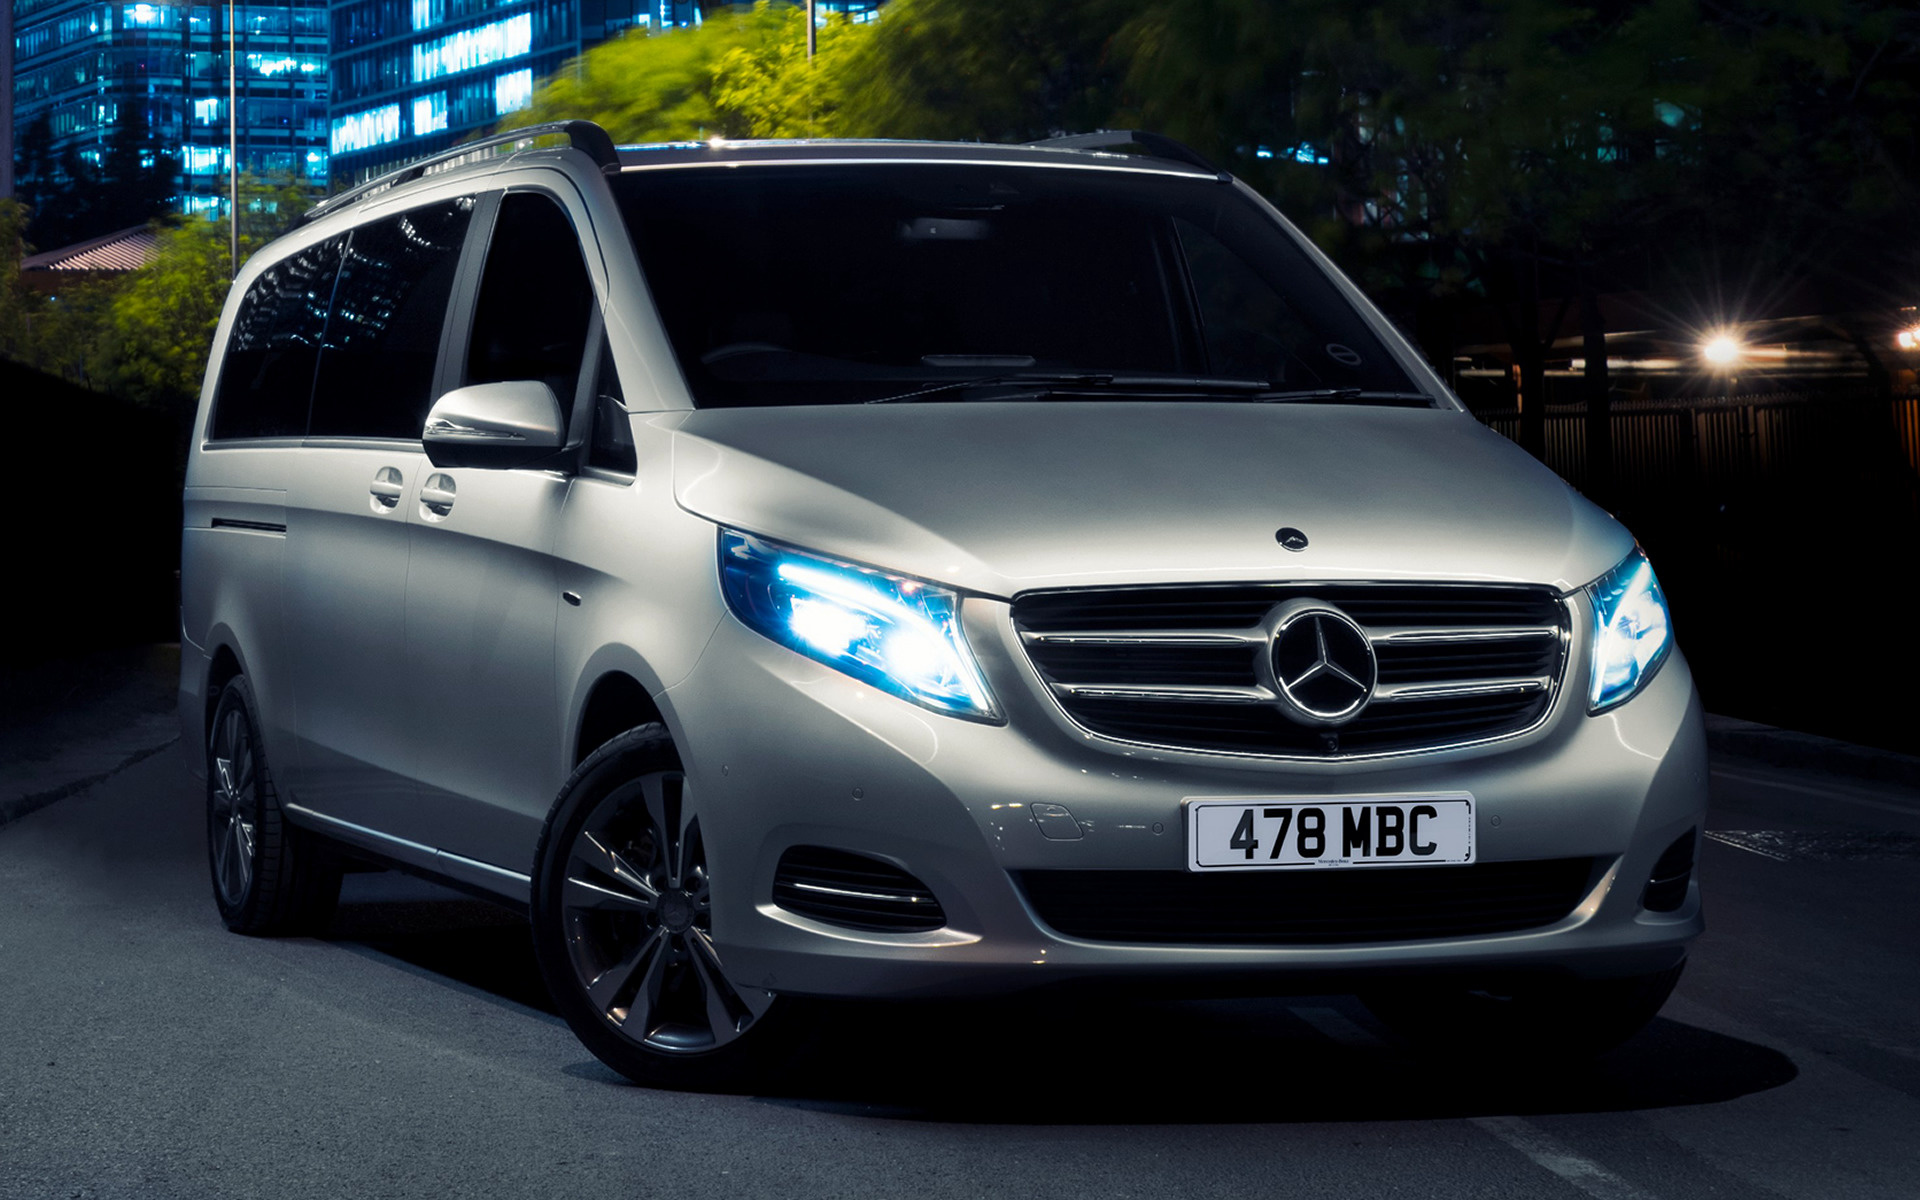 Mercedes-Benz V-Class [ExtraLong] (2015) UK Wallpapers and HD Images ...